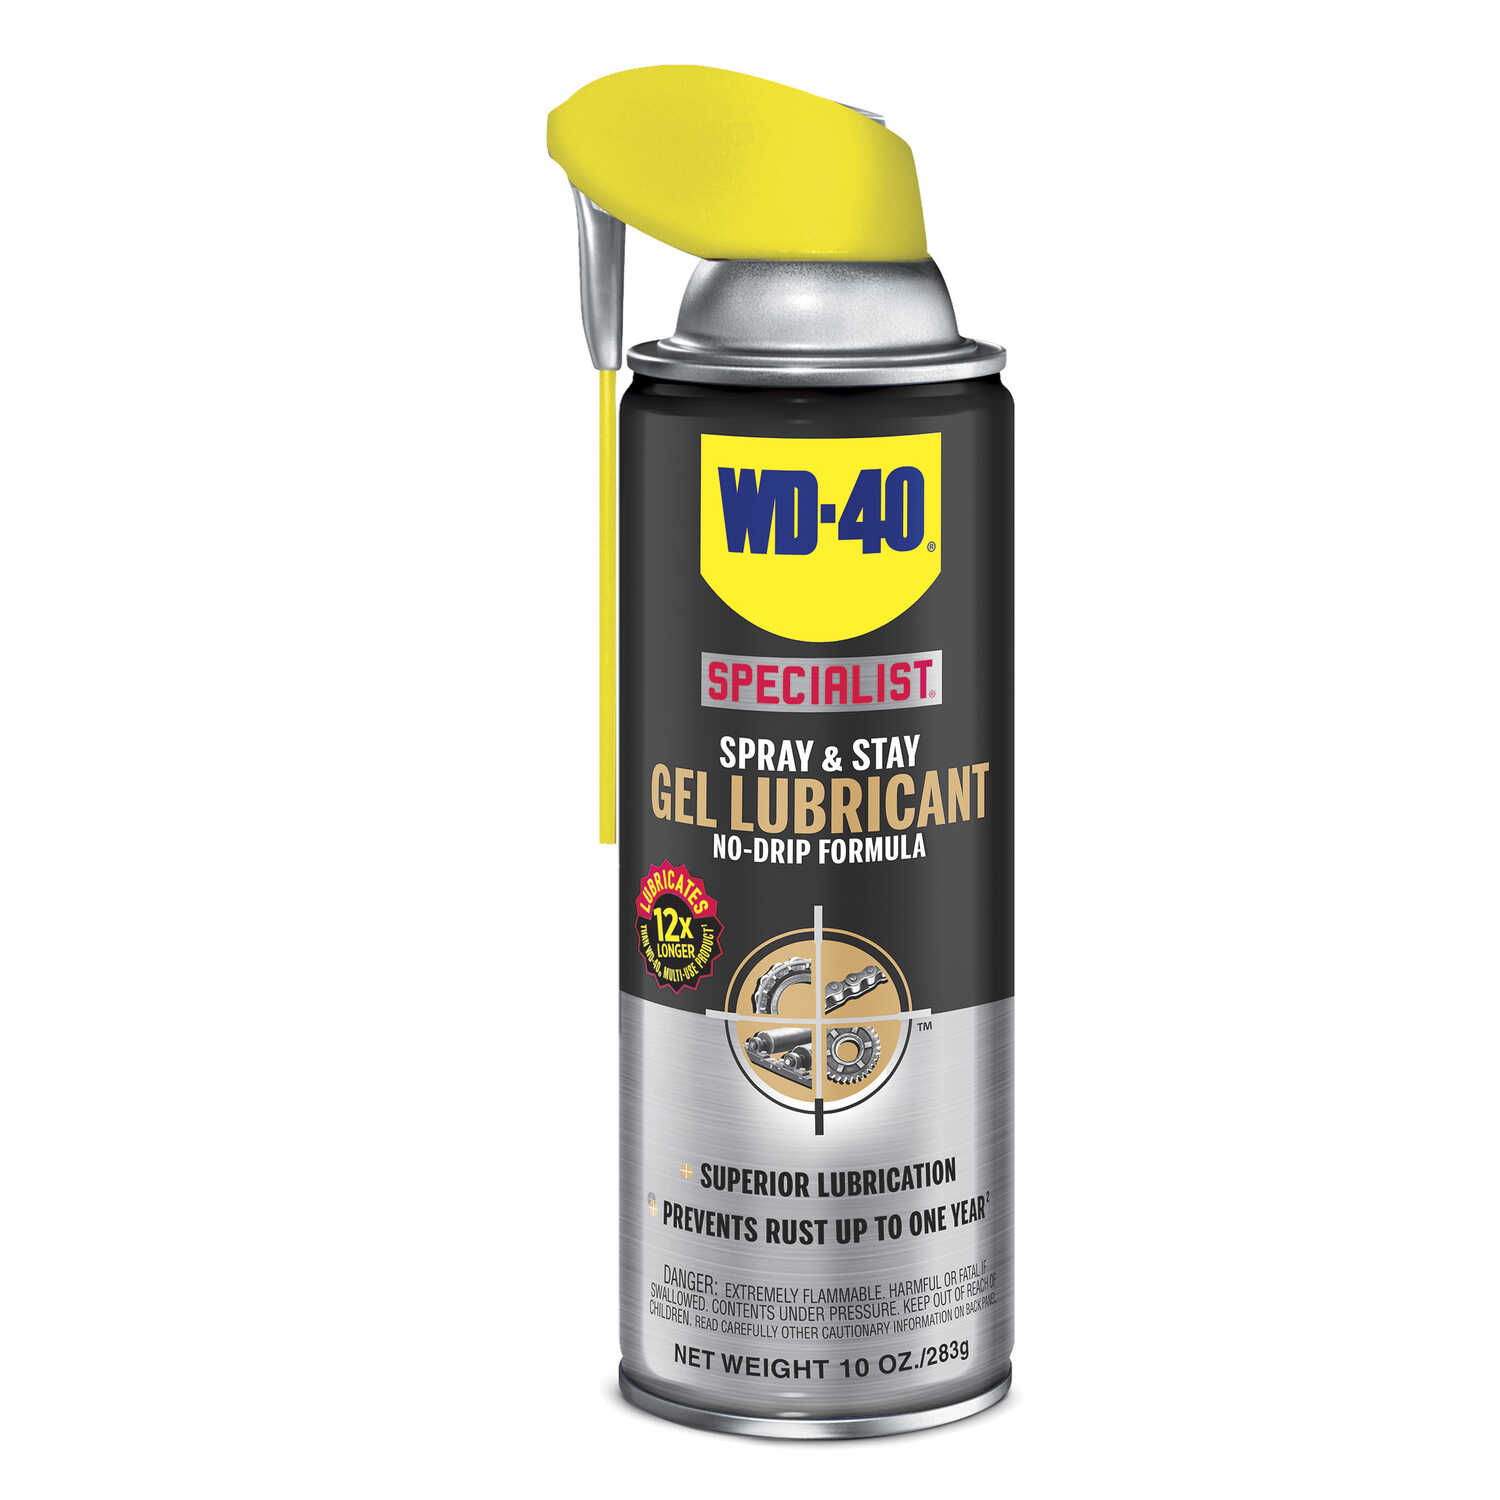 WD-40  Specialist Spray & Stay  Gel  Lubricant  Can